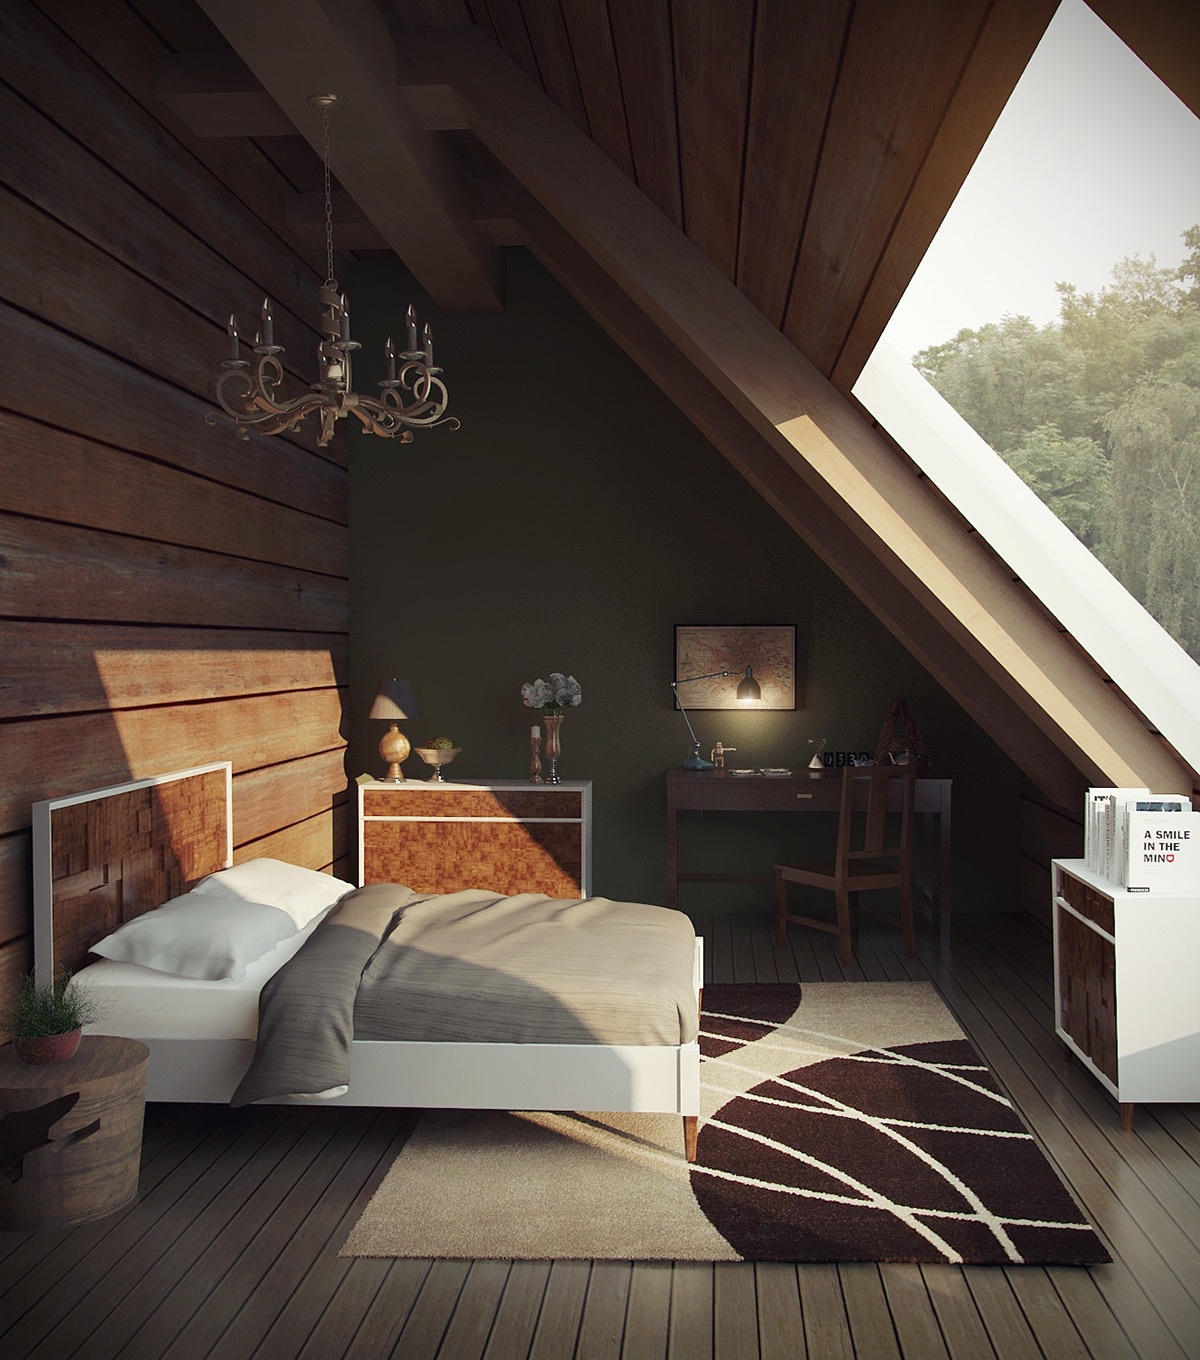 Chandelier Bedrrom Attic Wooden Wall Green Wall - 25 amazing attic bedrooms that you would absolutely enjoy sleeping in